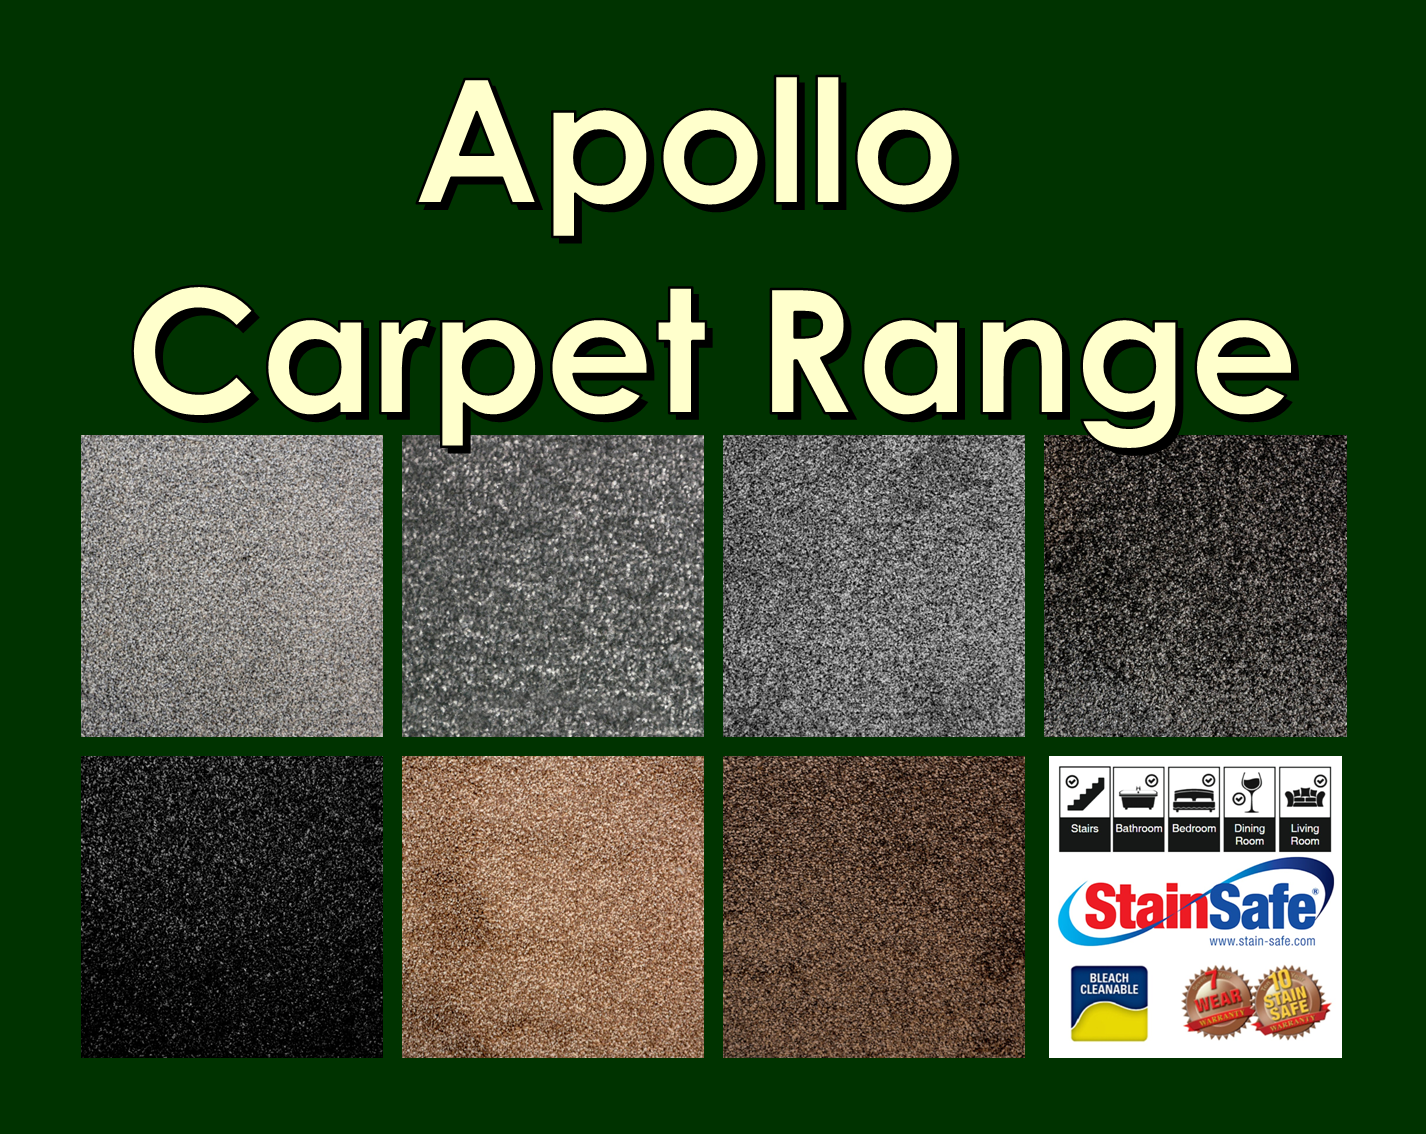 View Apollo Carpet Range